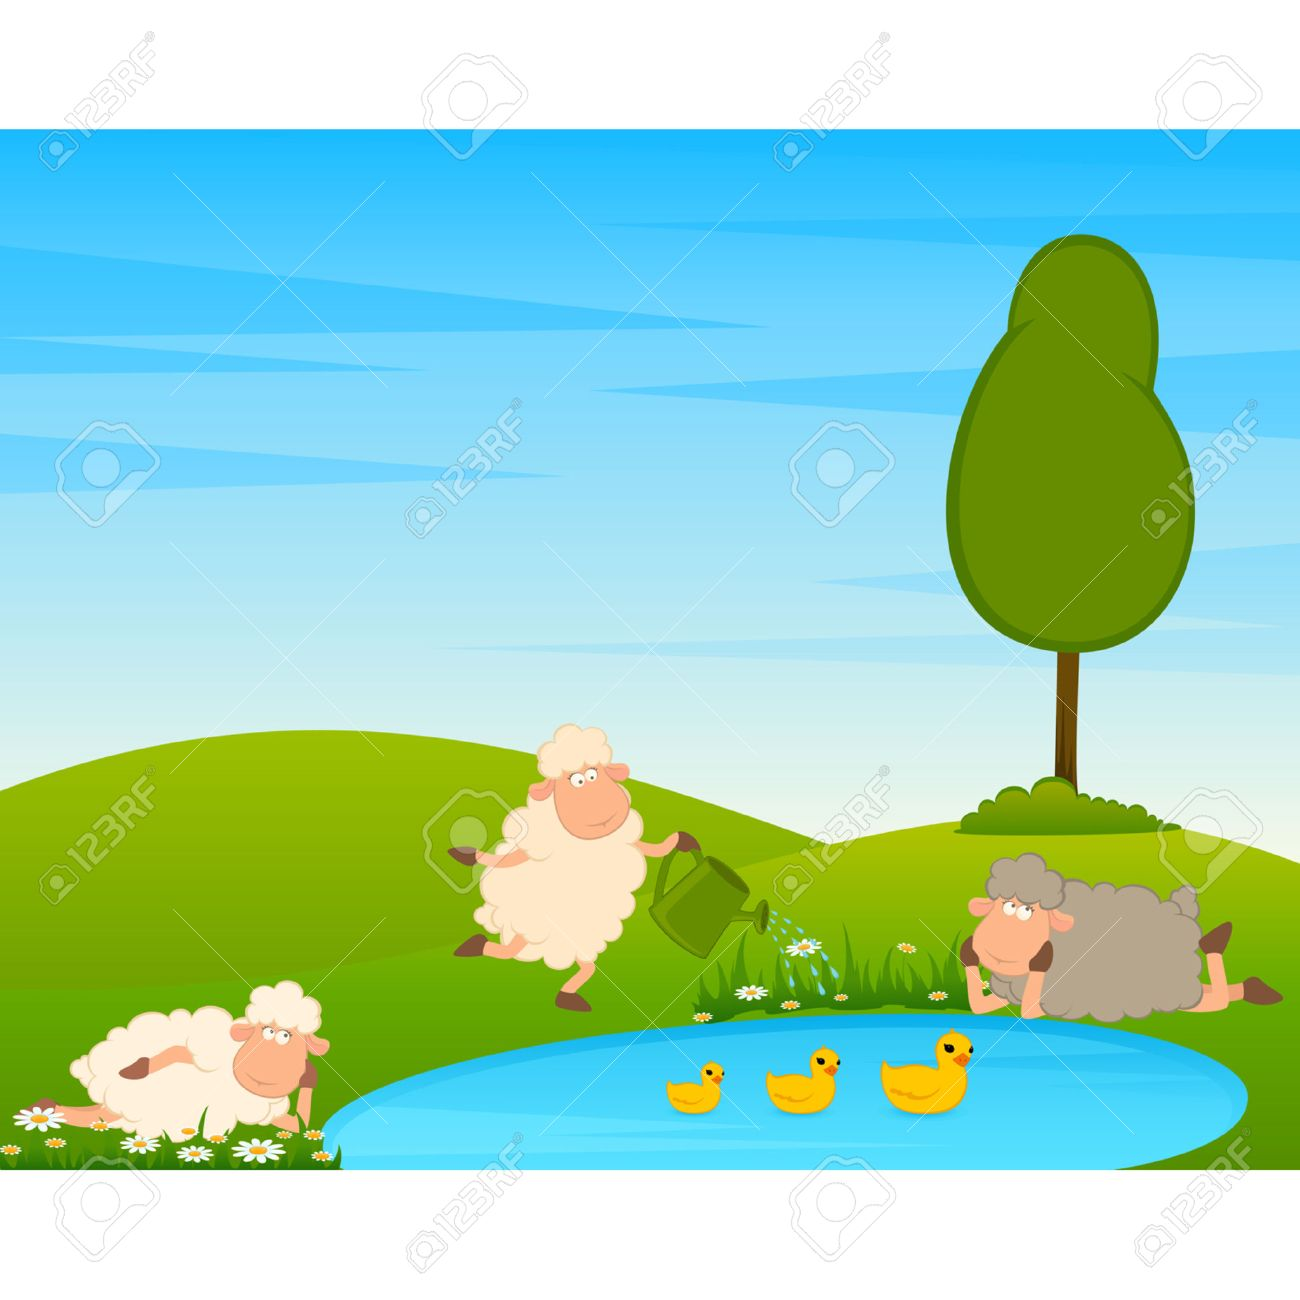 Cartoon funny sheep on country landscape with tree and lake. Stock Vector - 8565602